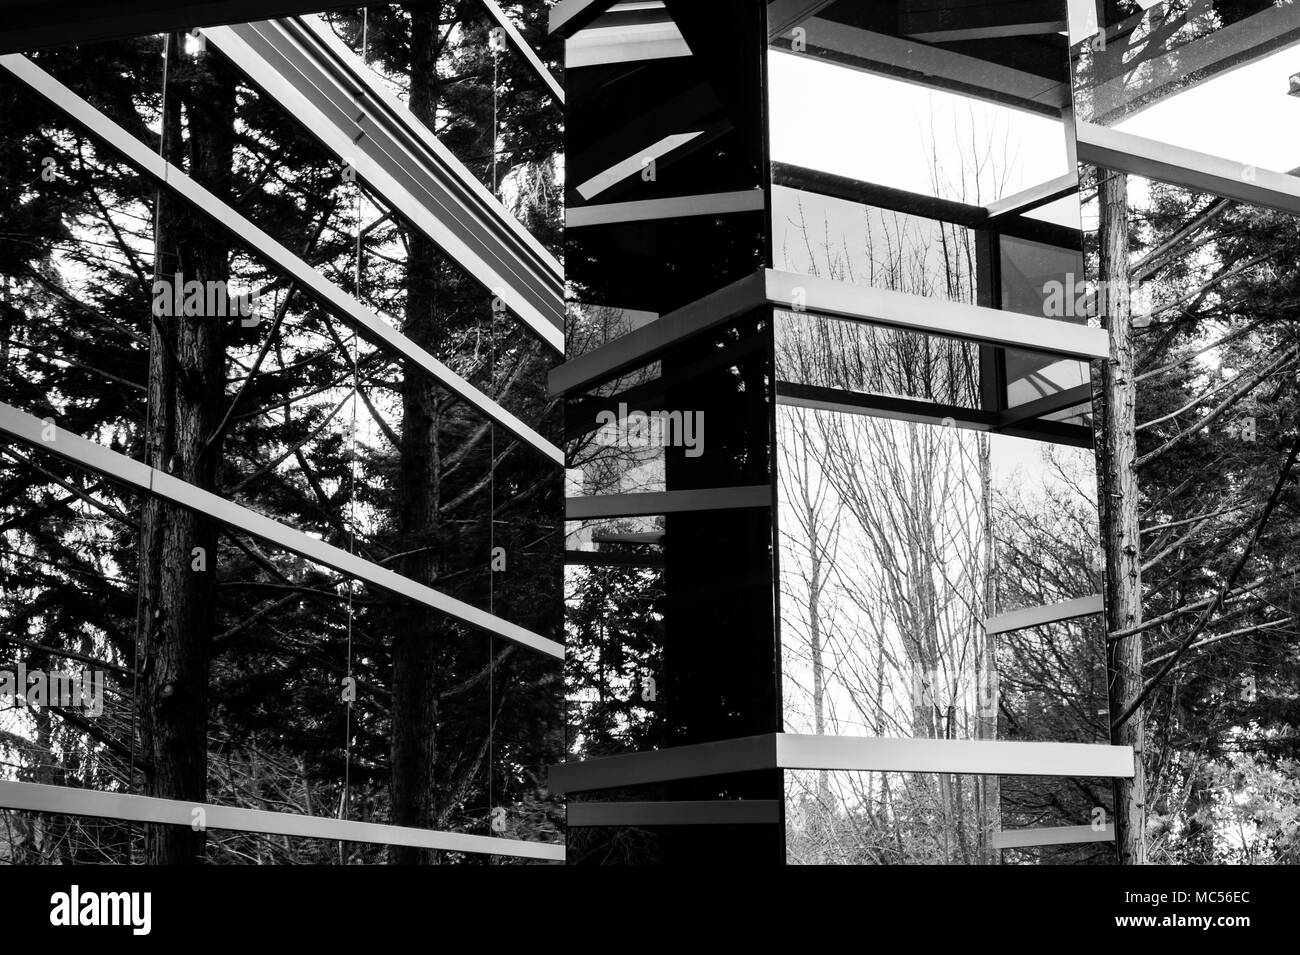 Abstract image of office building with window reflections of trees and unusual architecture design Stock Photo